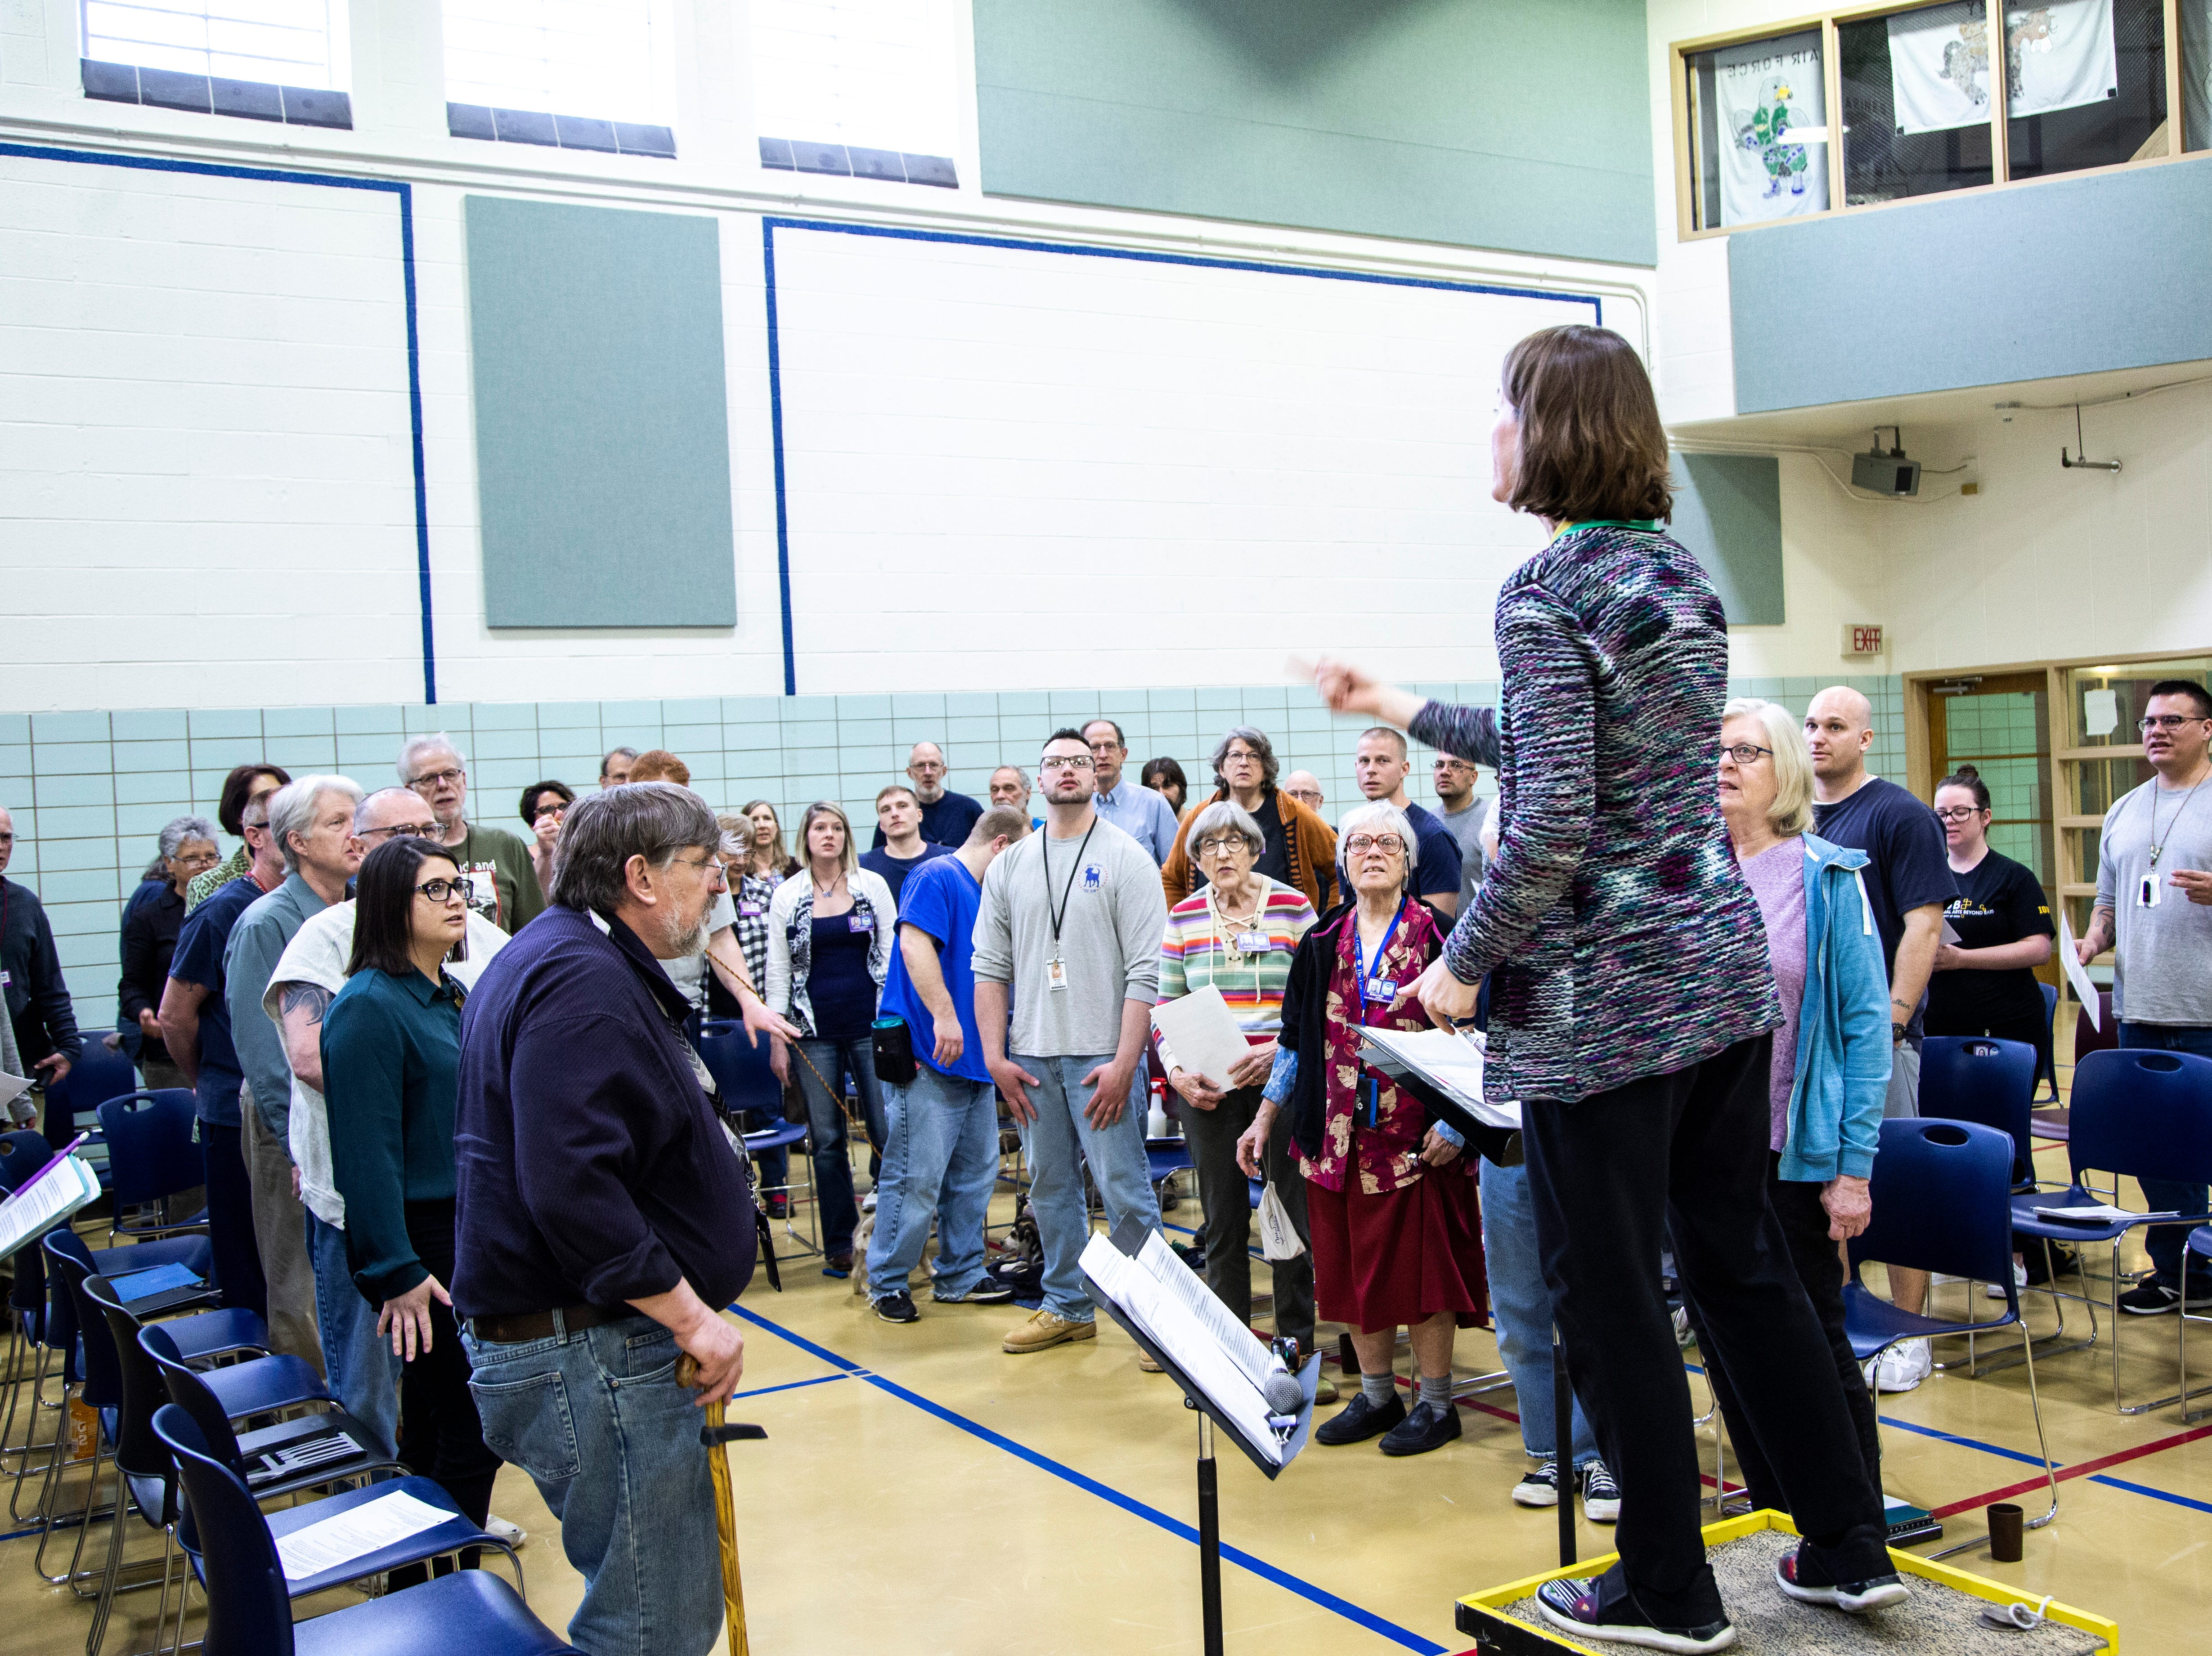 Mary Cohen, an associate professor of music education at the University of Iowa, conducts during an Oakdale Community Choir practice on Tuesday, April 16, 2019, at Oakdale Prison in Coralville, Iowa.